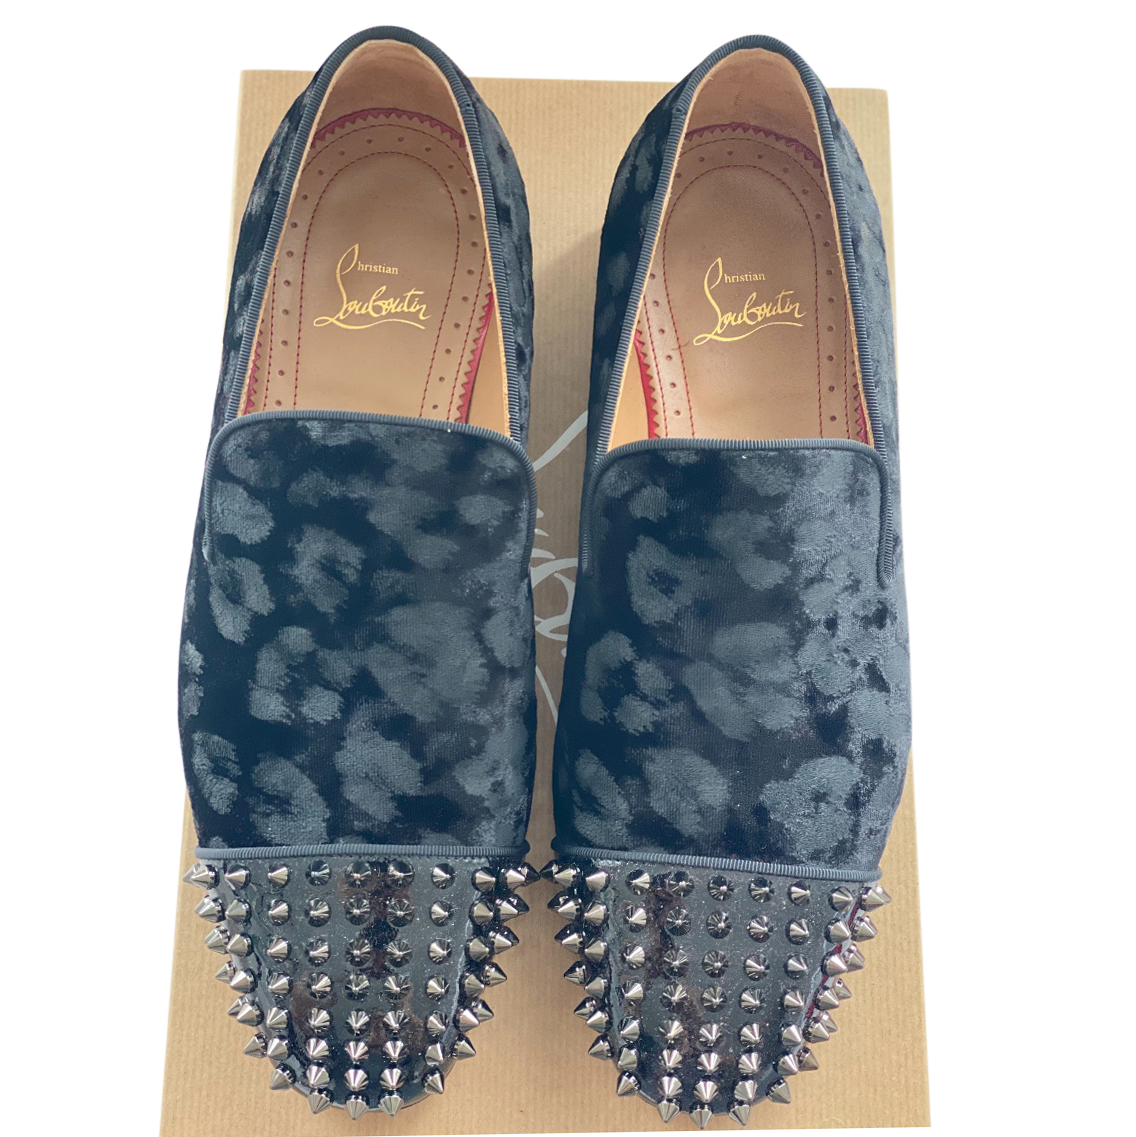 Christian Louboutin Leopard Jacquard Spiked Loafers